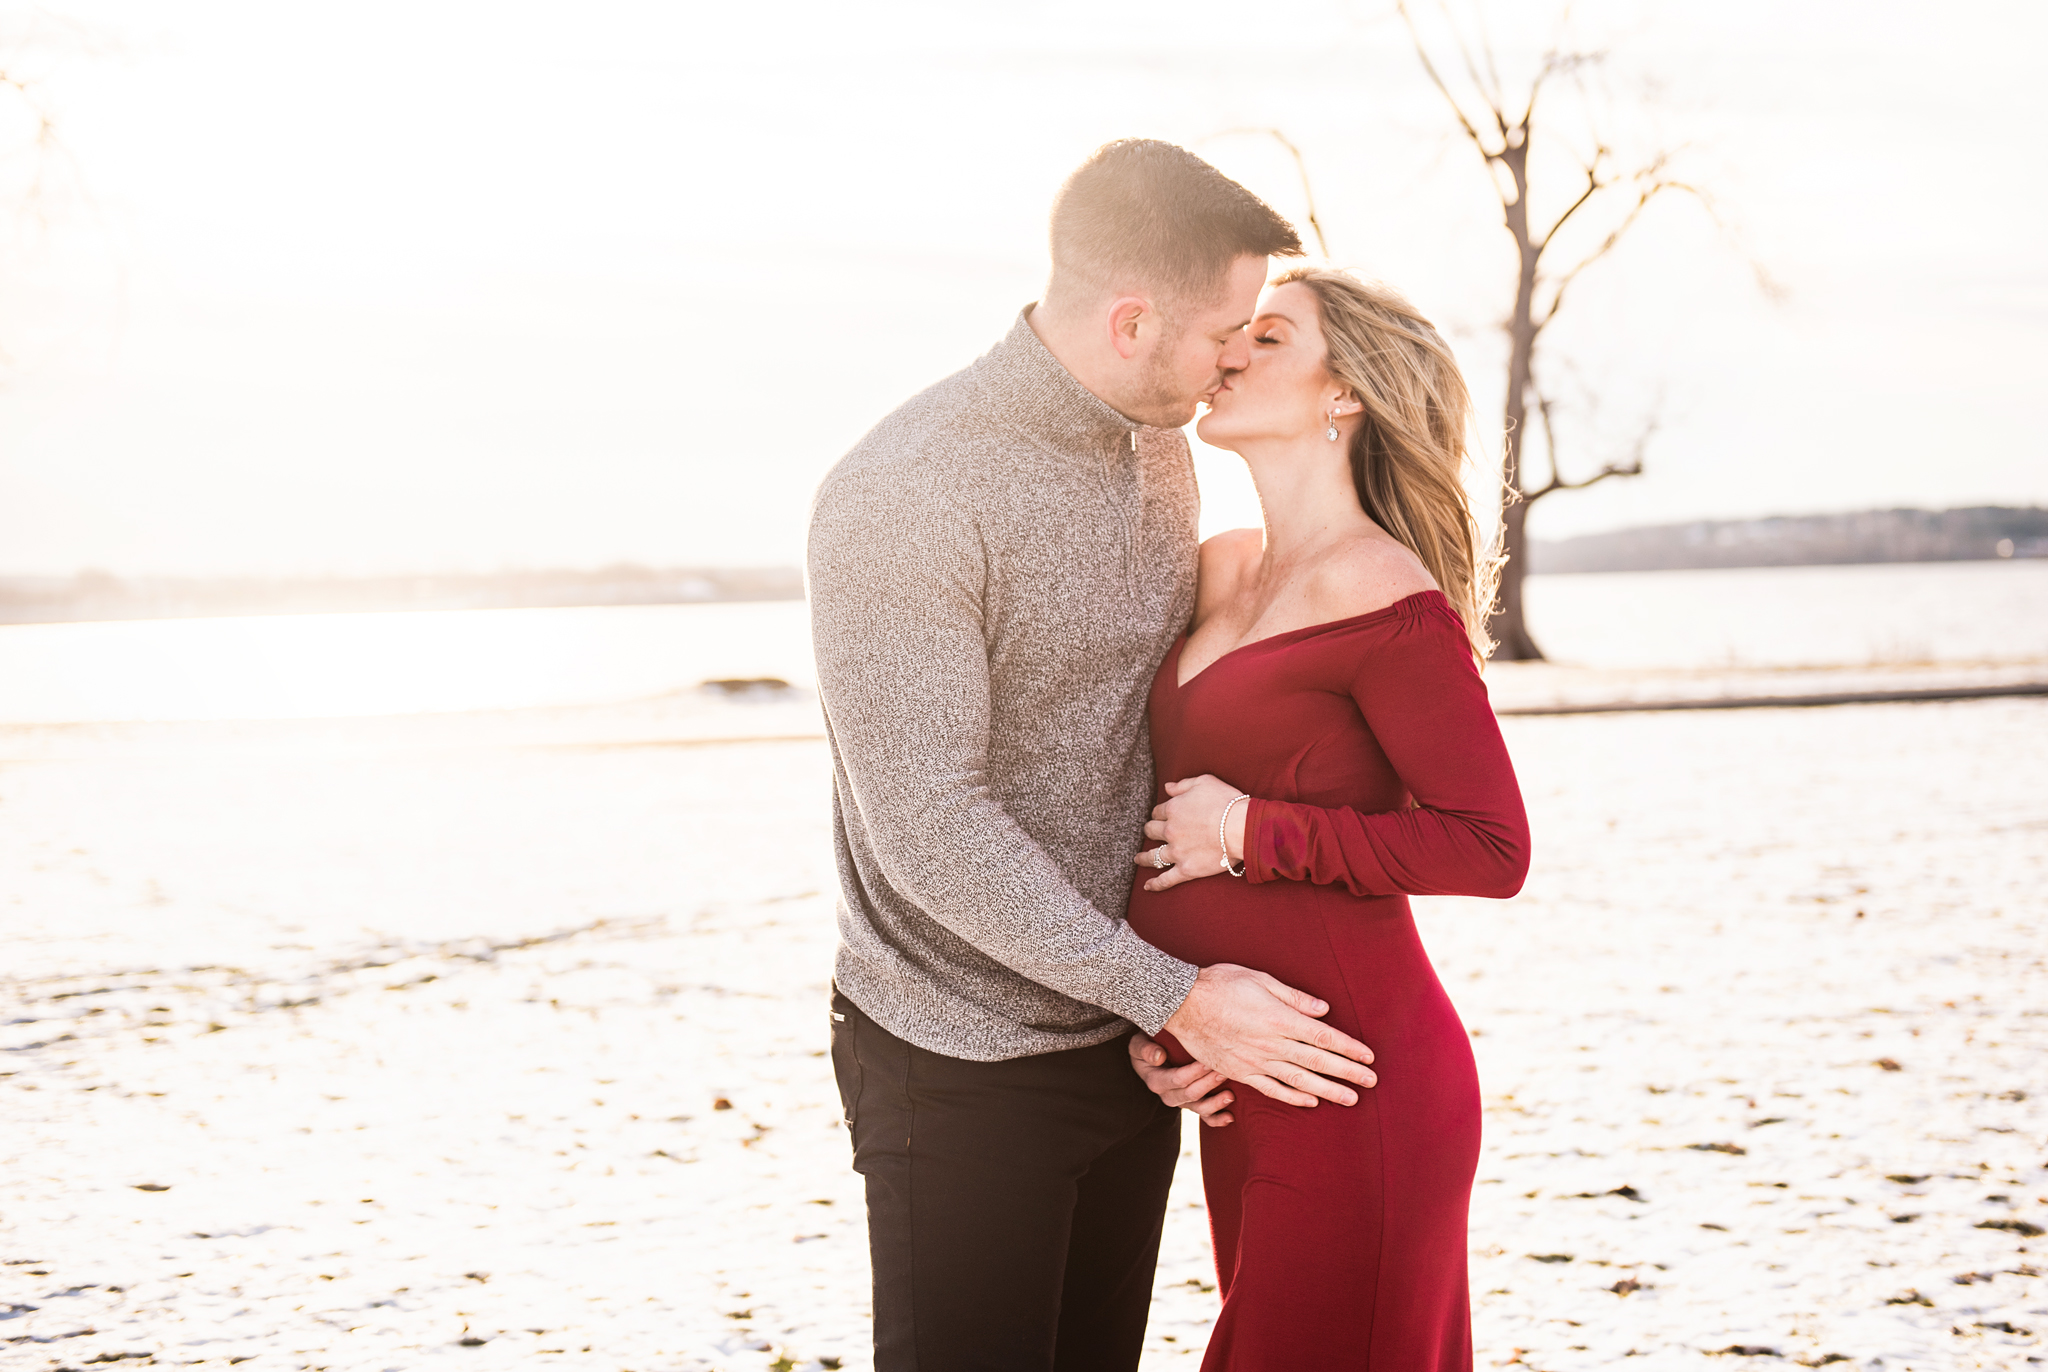 Onondaga_Lake_Park_Syracuse_Maternity_Session_JILL_STUDIO_Rochester_NY_Photographer_DSC_3413.jpg